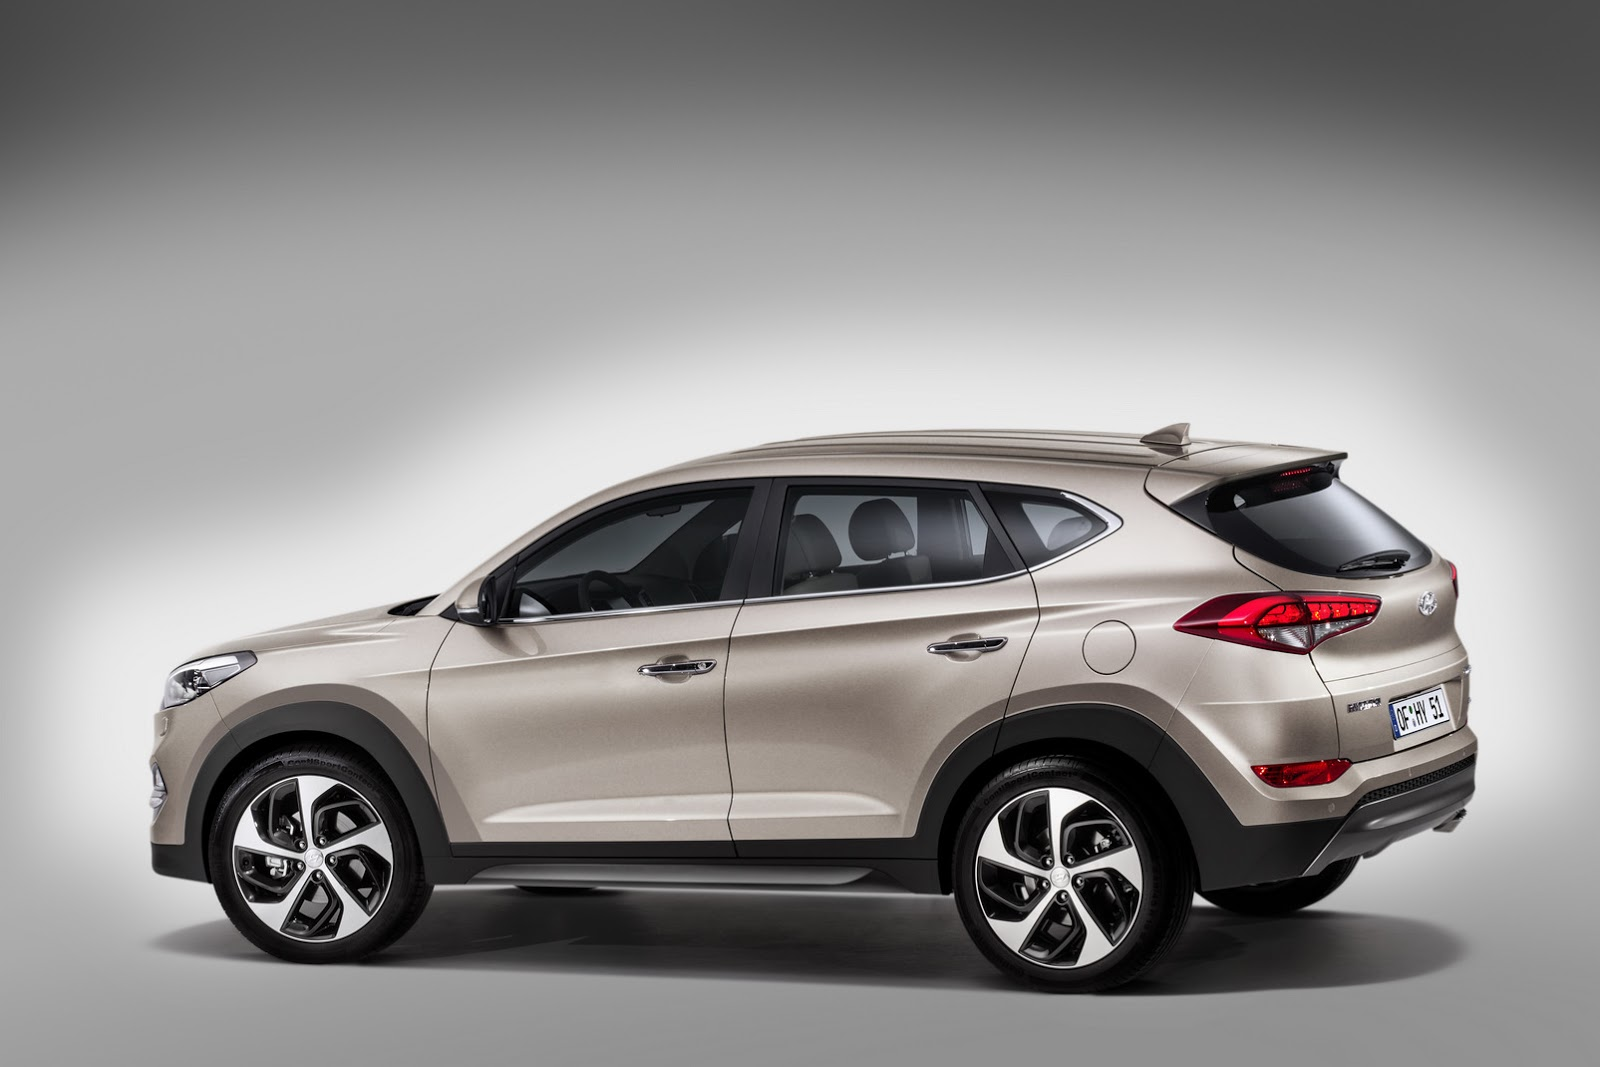 hyundai details new 2016 tucson gets 7 speed dct and 5 engines with up to 184ps carscoops